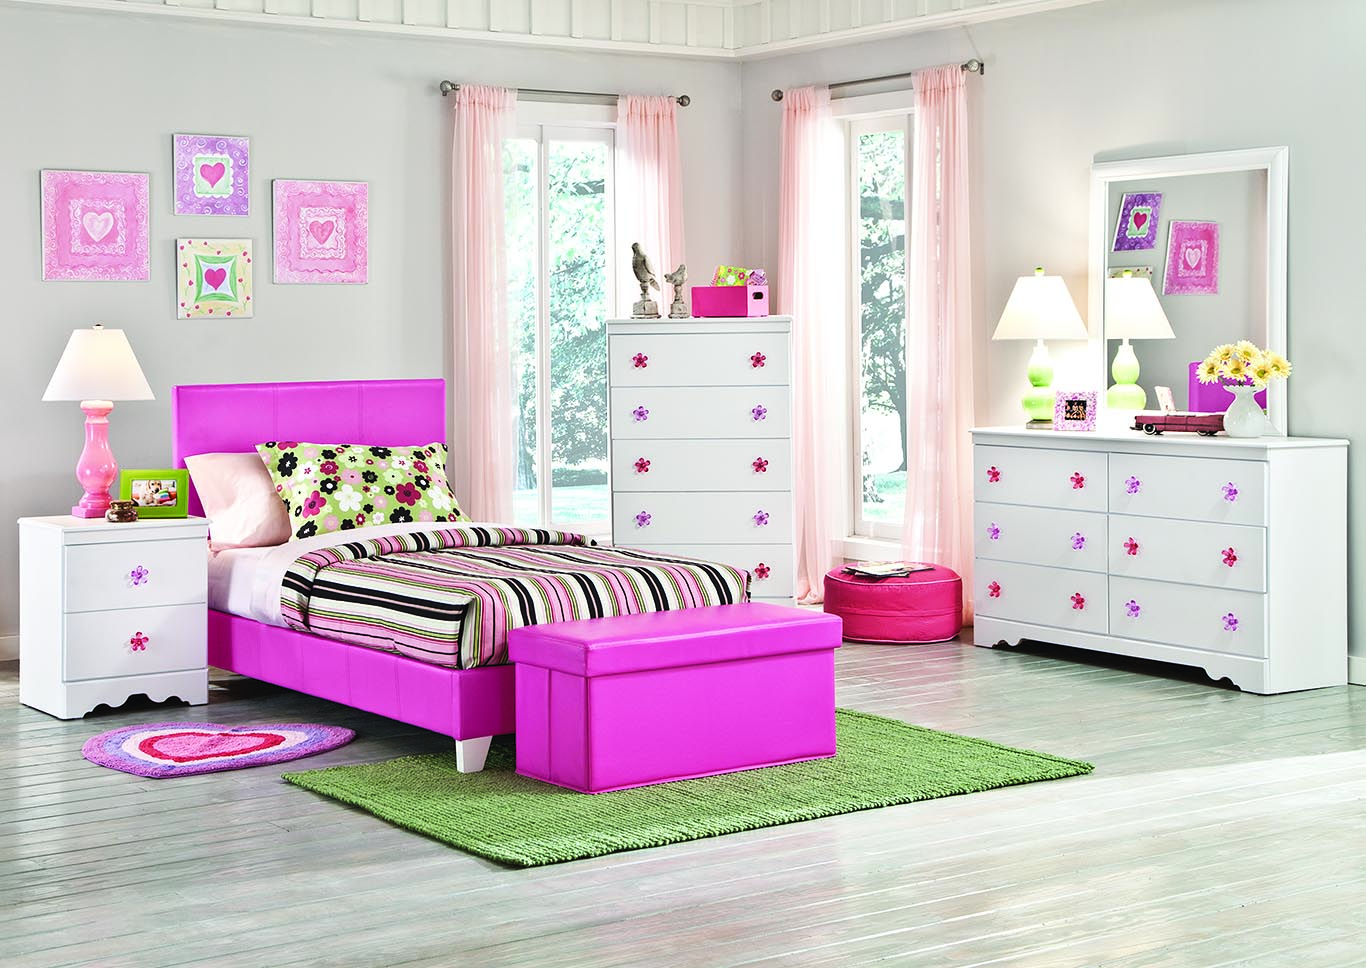 Savannah Pink Full Bed,Kith